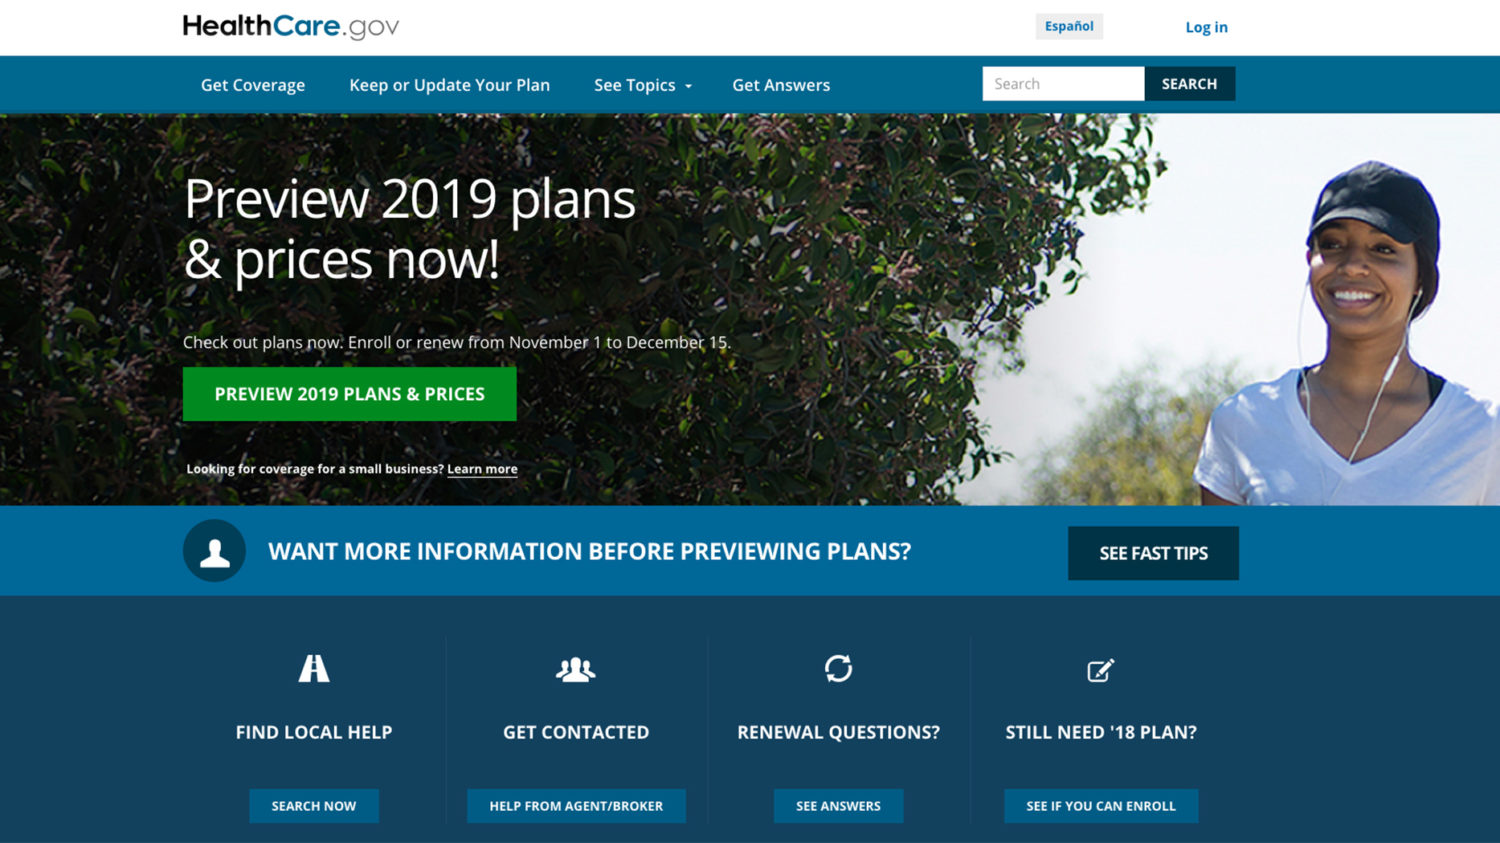 Best Federal Health Insurance Plan 2019 Looking For ACA Health Insurance For 2019? Here's What To Expect